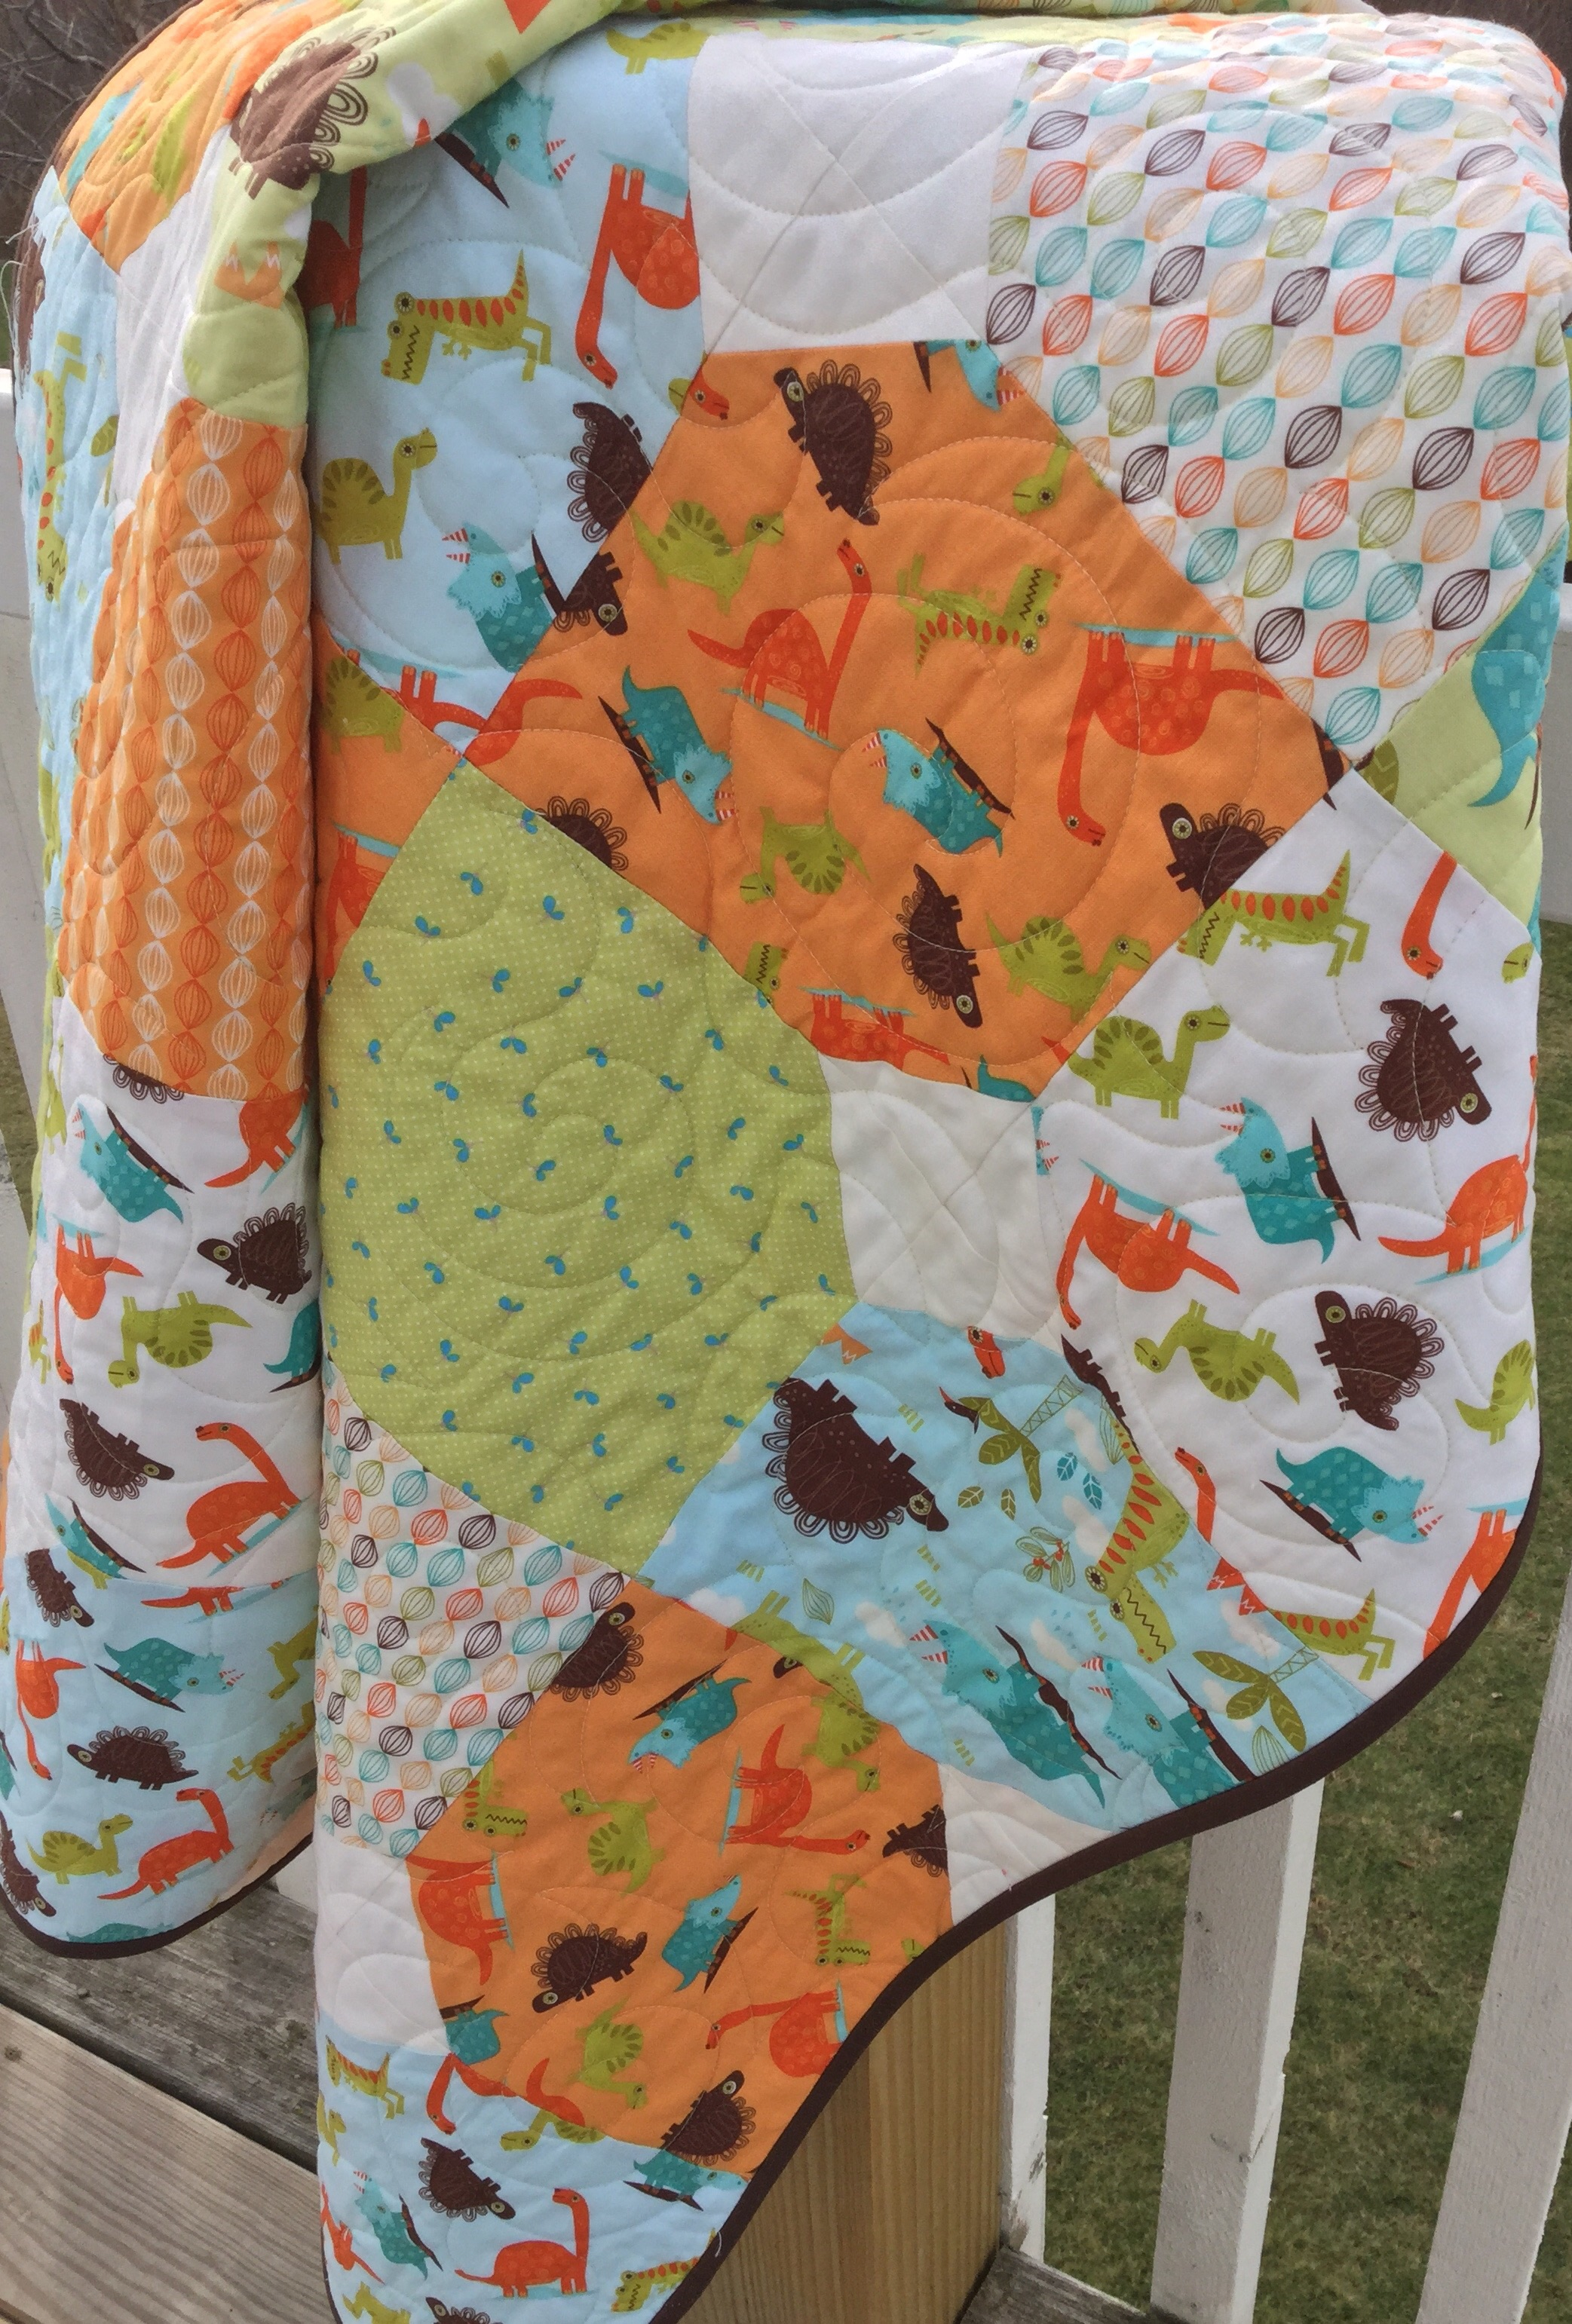 Easy Baby quilt kits | SewMod : dinosaur baby quilt - Adamdwight.com